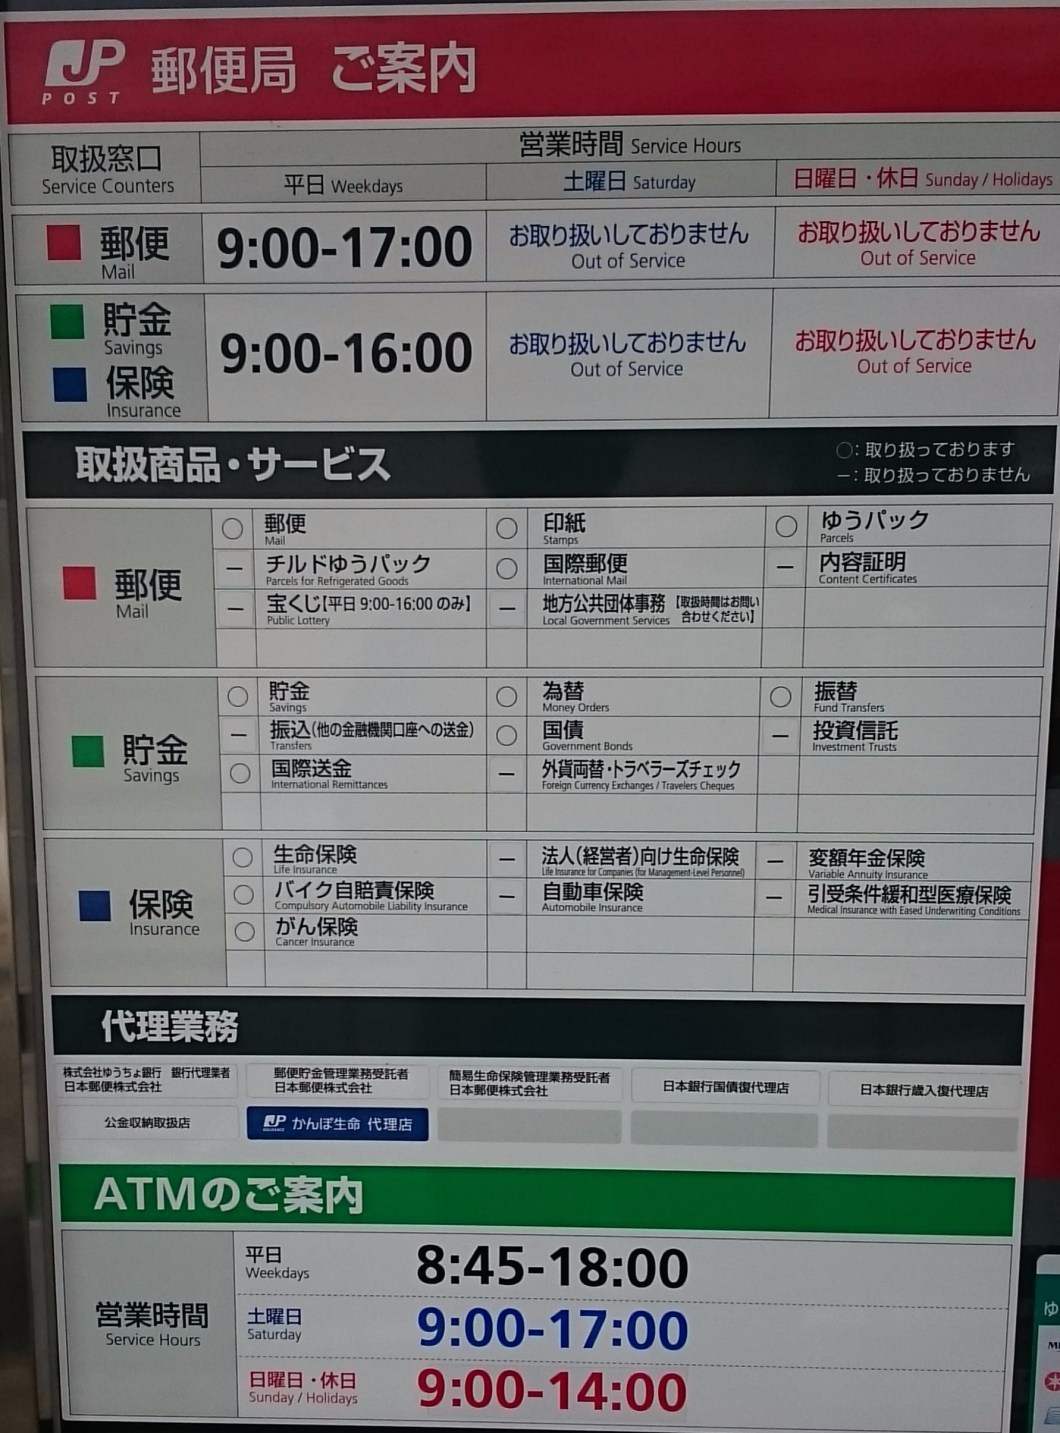 Opening hours at the Yuzawa Post Office